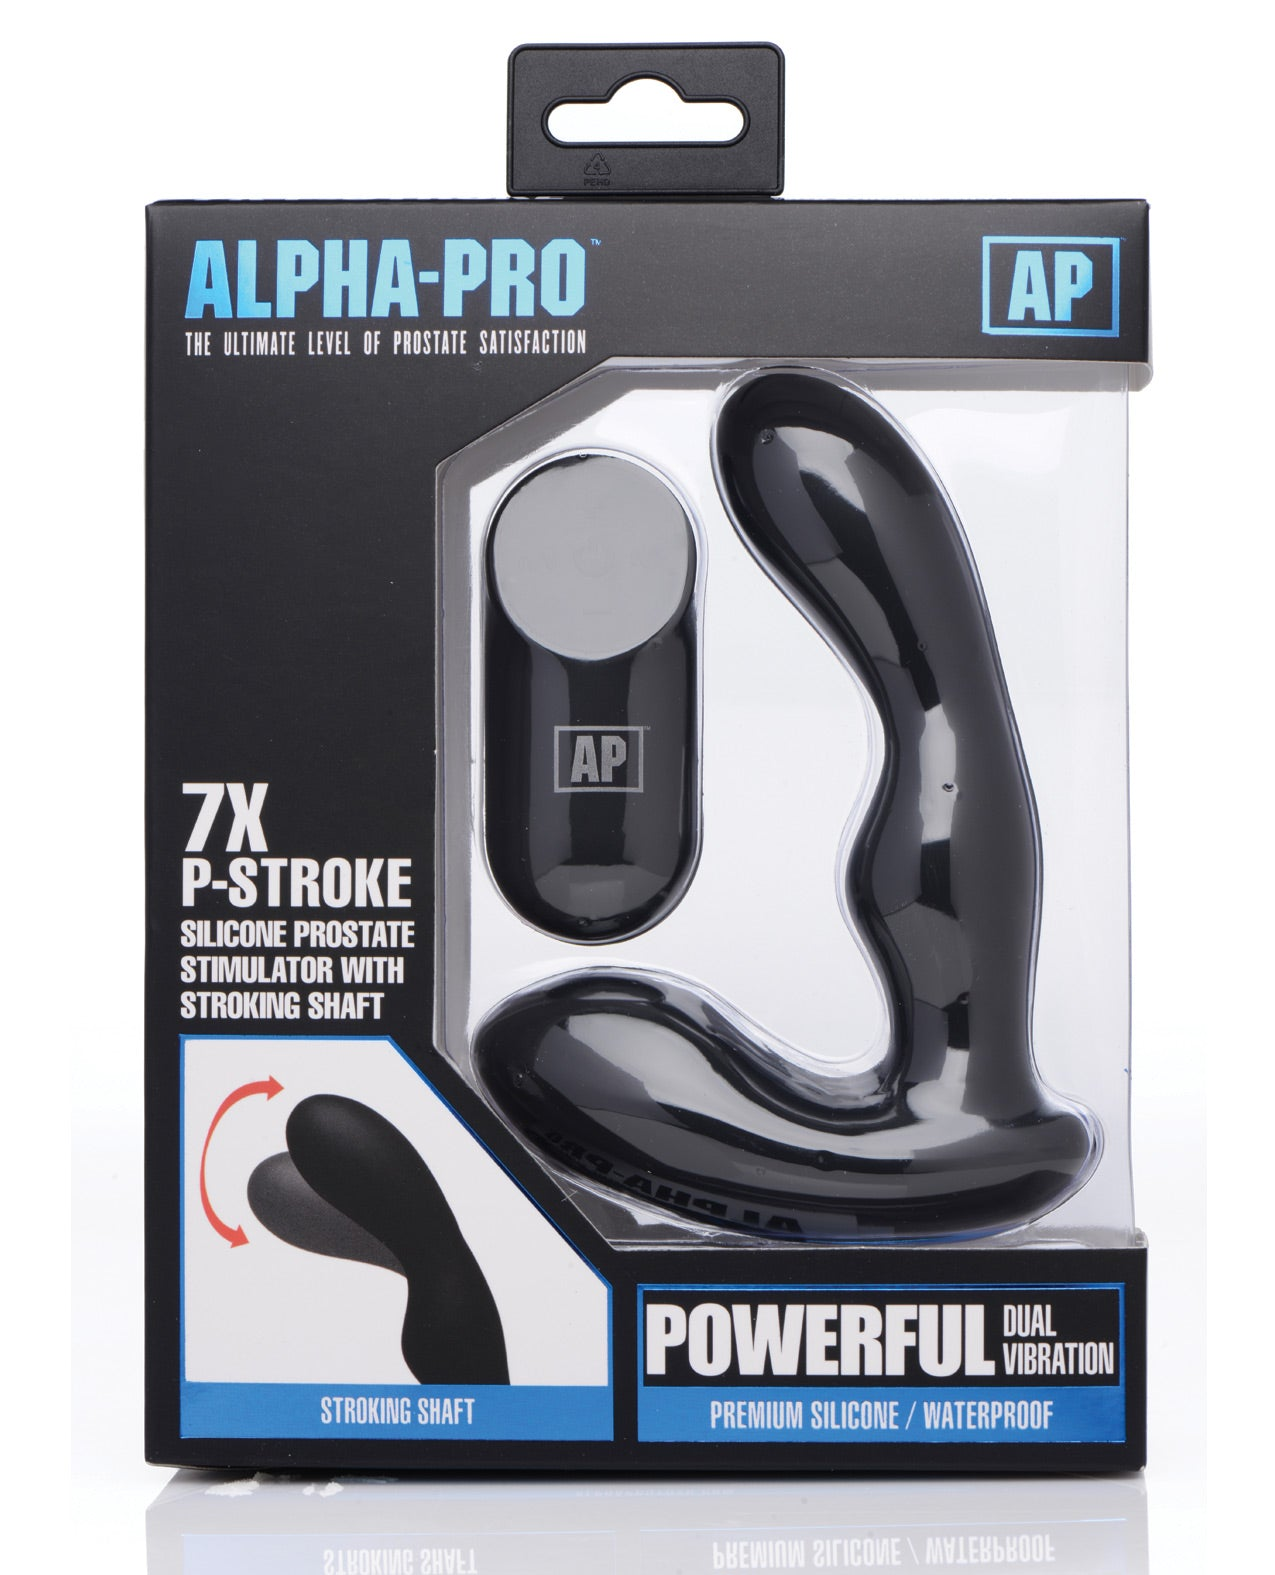 Alpha Pro 7x P-Stroke Prostate Stimulator w/Stroking Shaft - Black